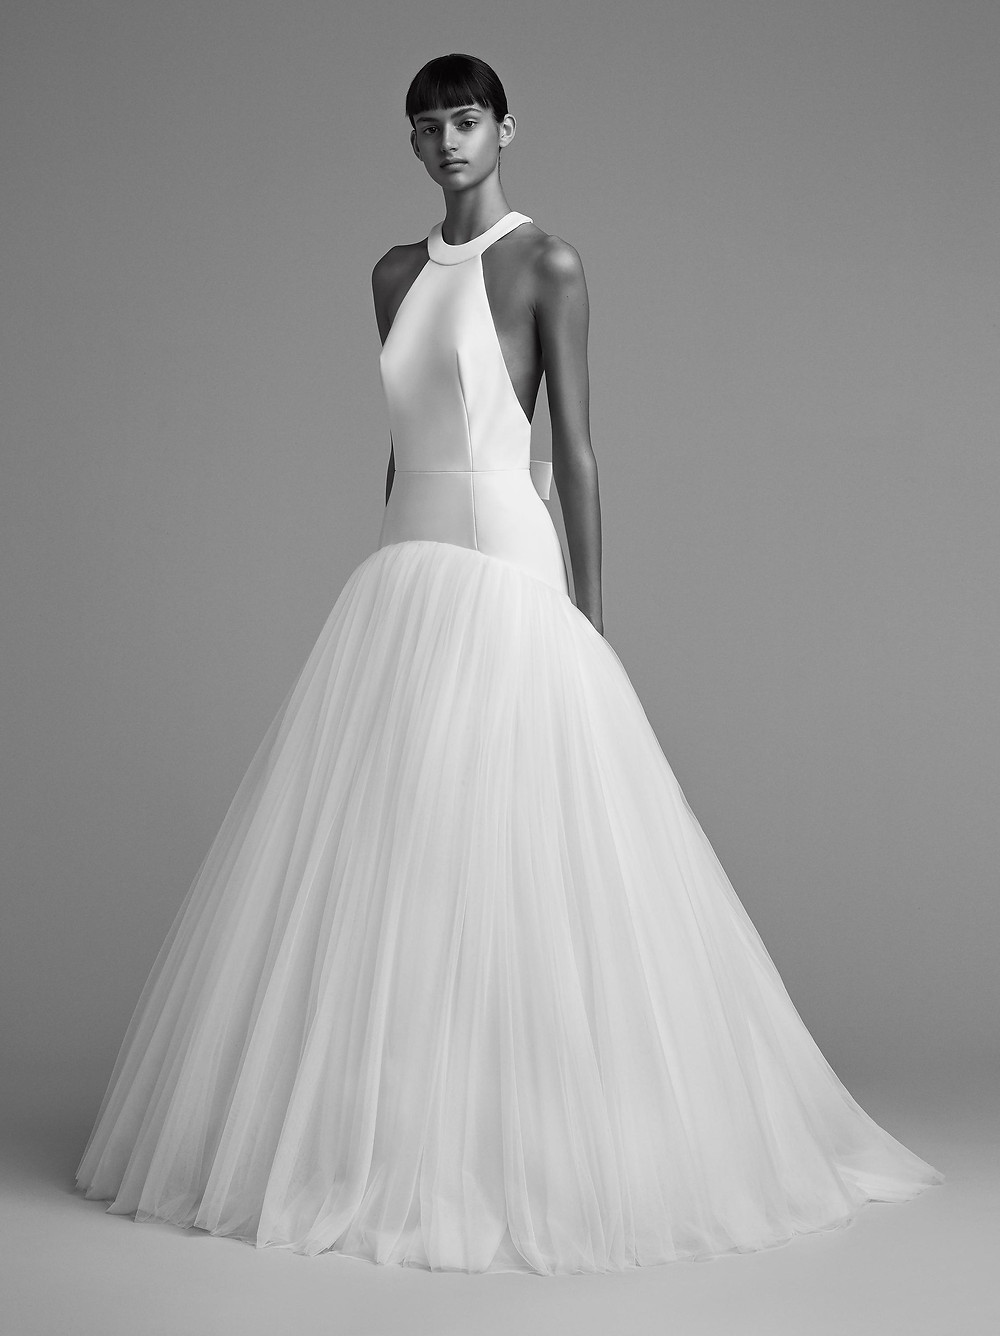 A Viktor & Rolf halterneck tulle drop waist ball gown wedding dress